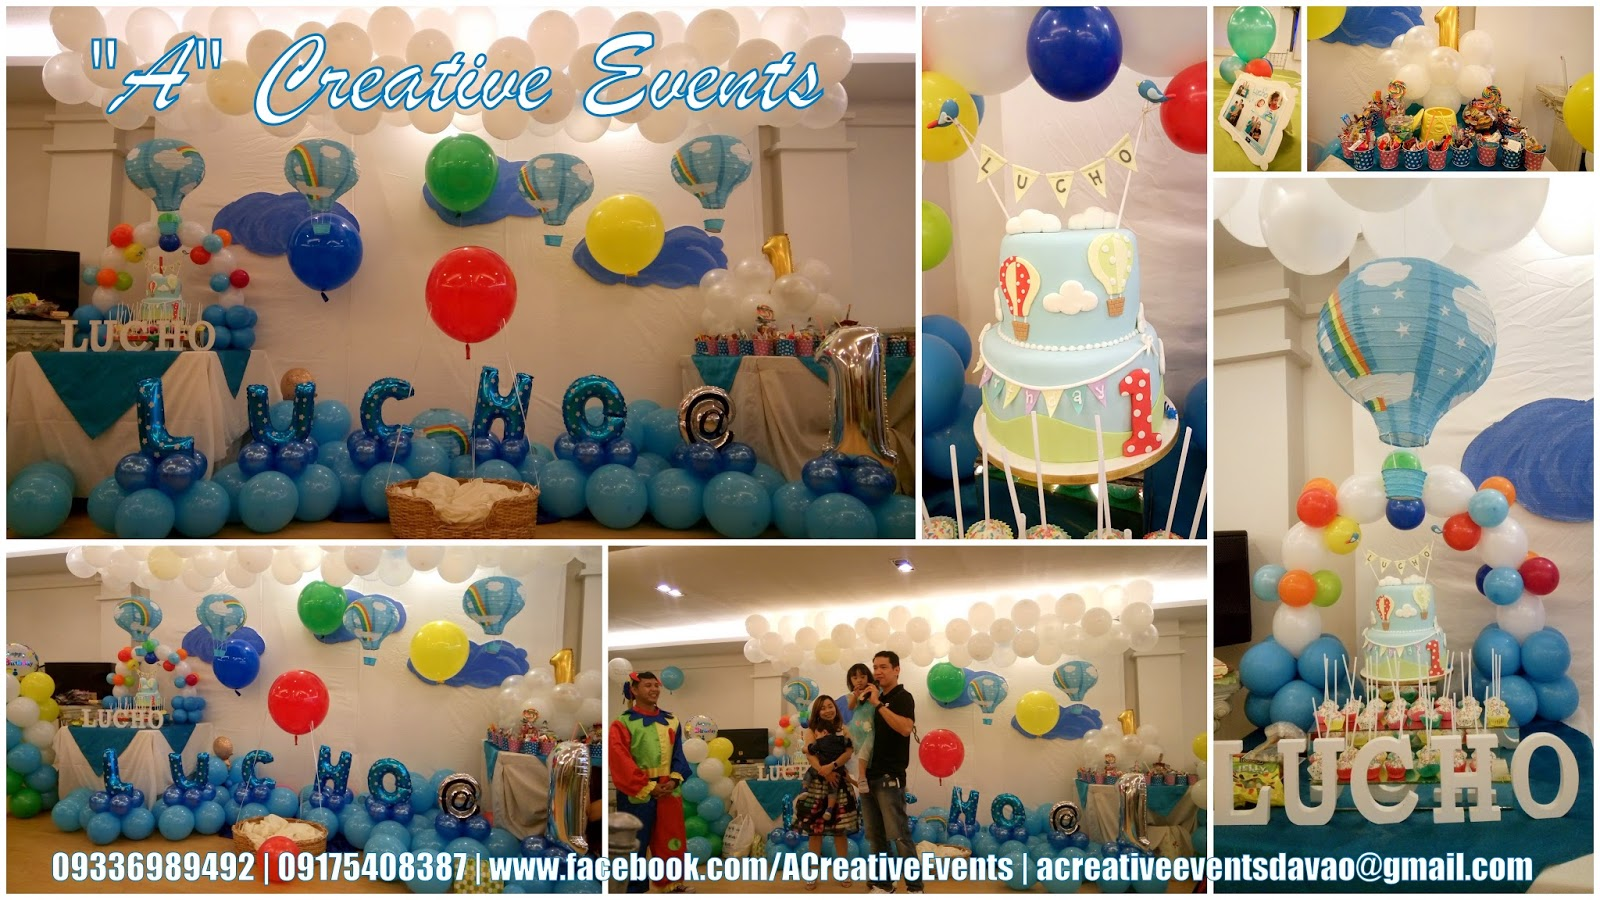 Gmail themes city - It S A Hot Air Balloon Theme For Lucho S 1st Birthday Party Everything Has Been Planned According To Theme From Balloons To Over All Stage And Venue